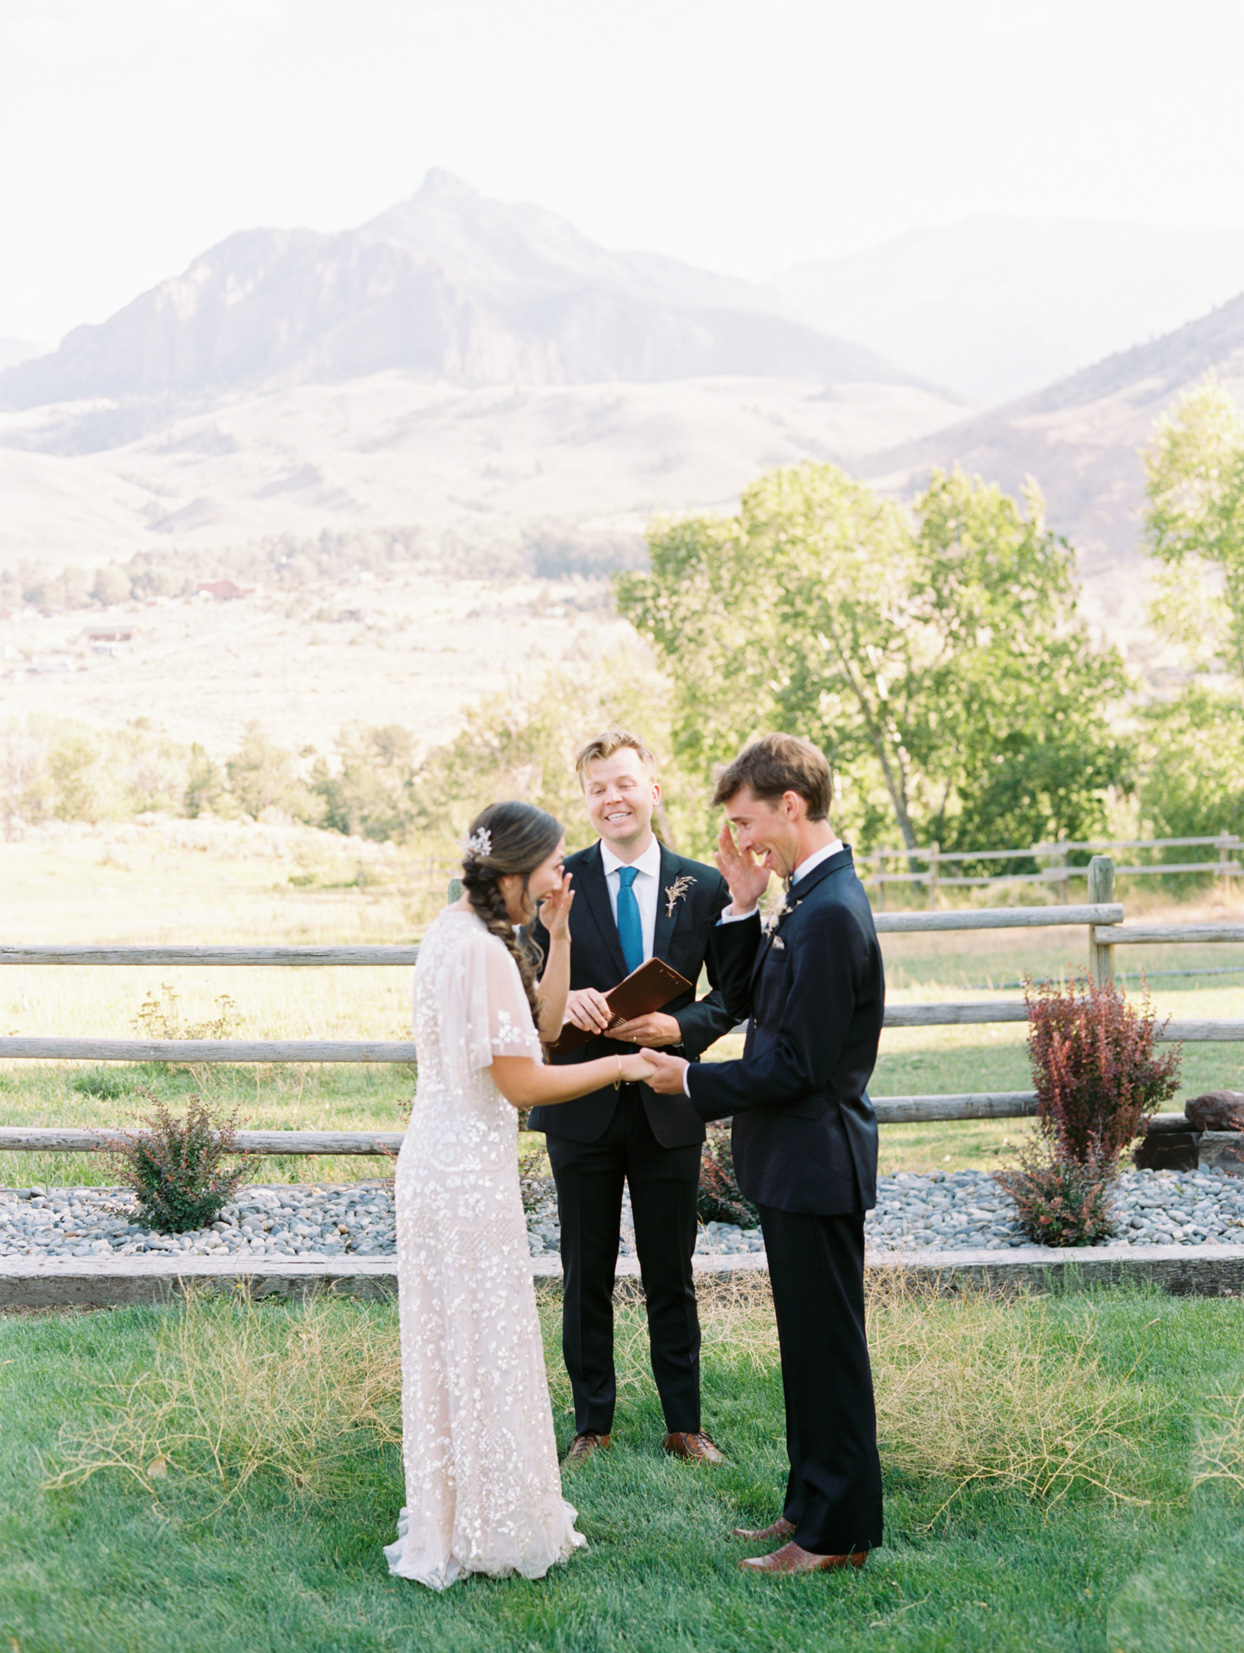 couple crying during wedding ceremony with mountain backdrop